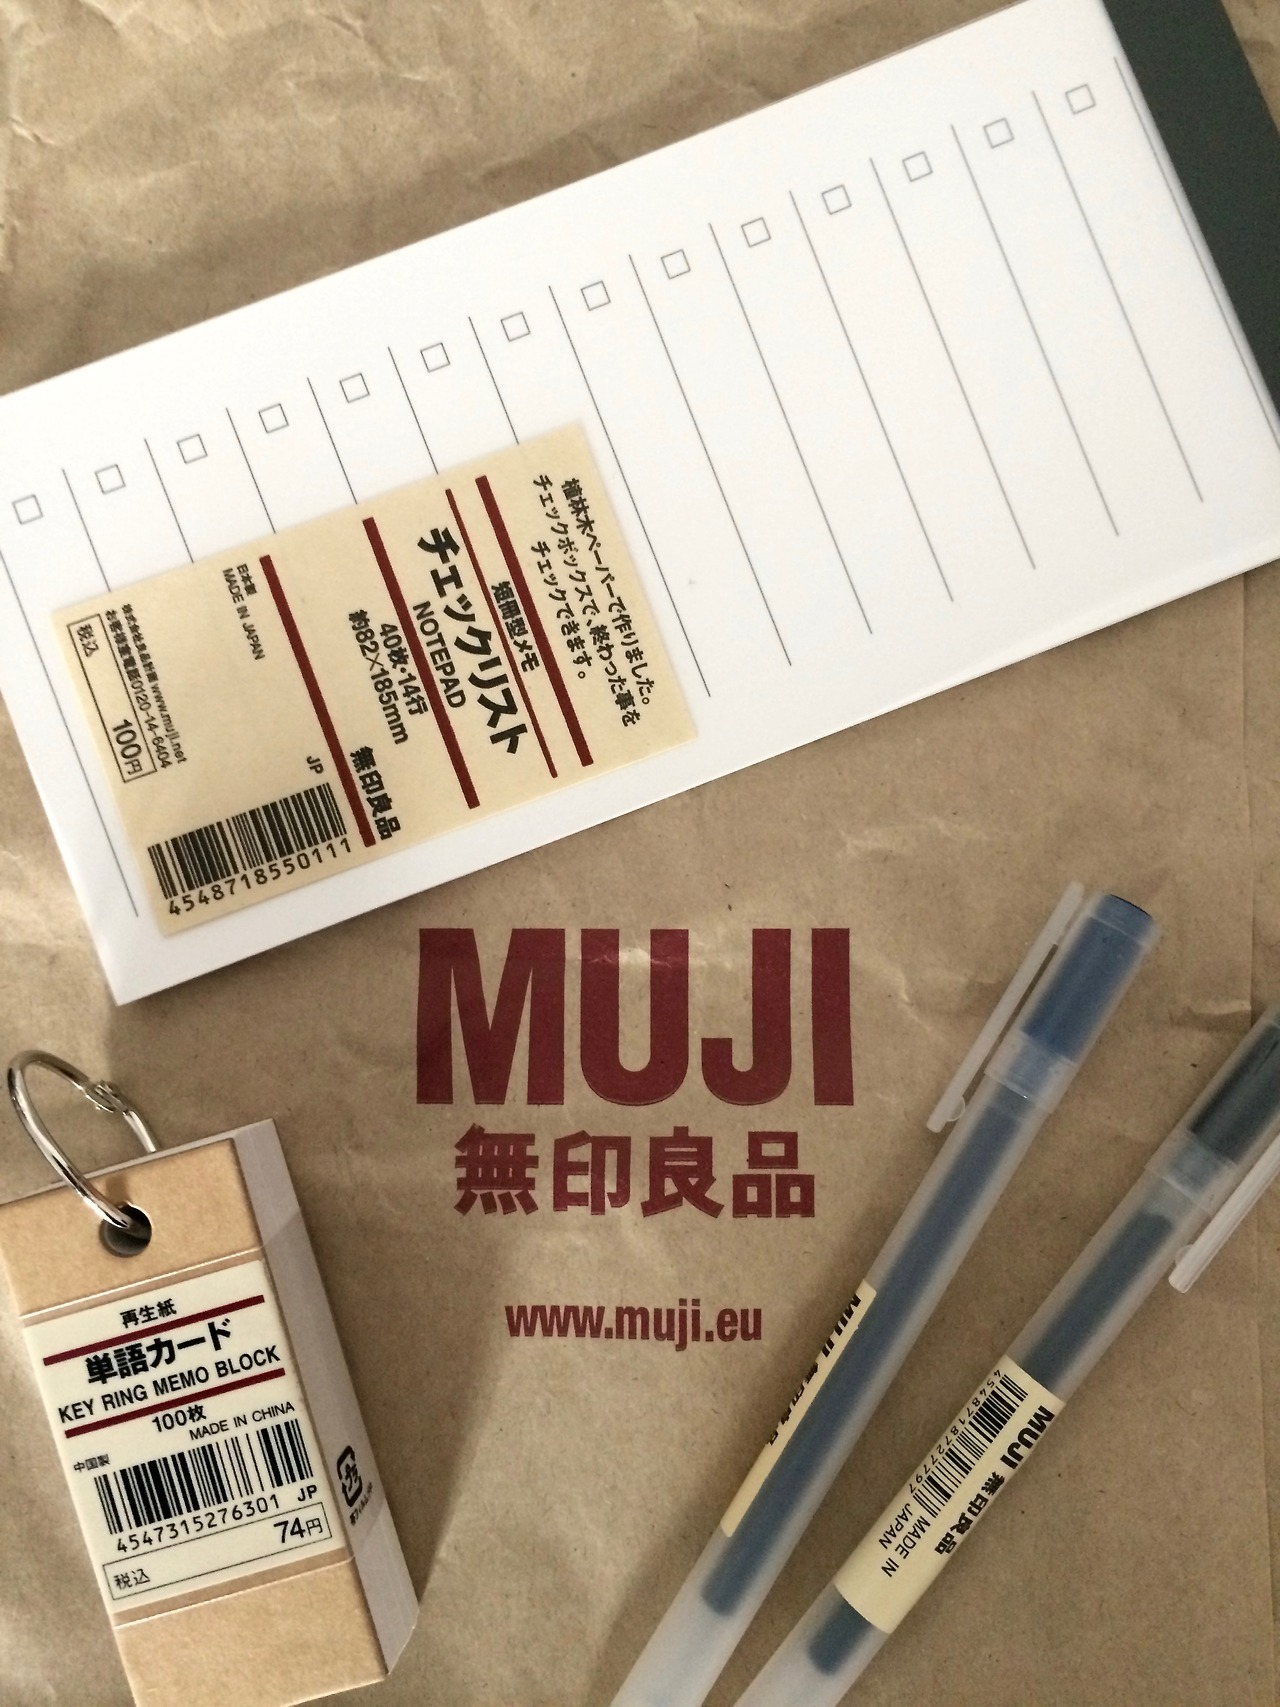 Muji Bed Sheets Blukki S Studyblr 4 100 Days Of Productivity Not Much Studying